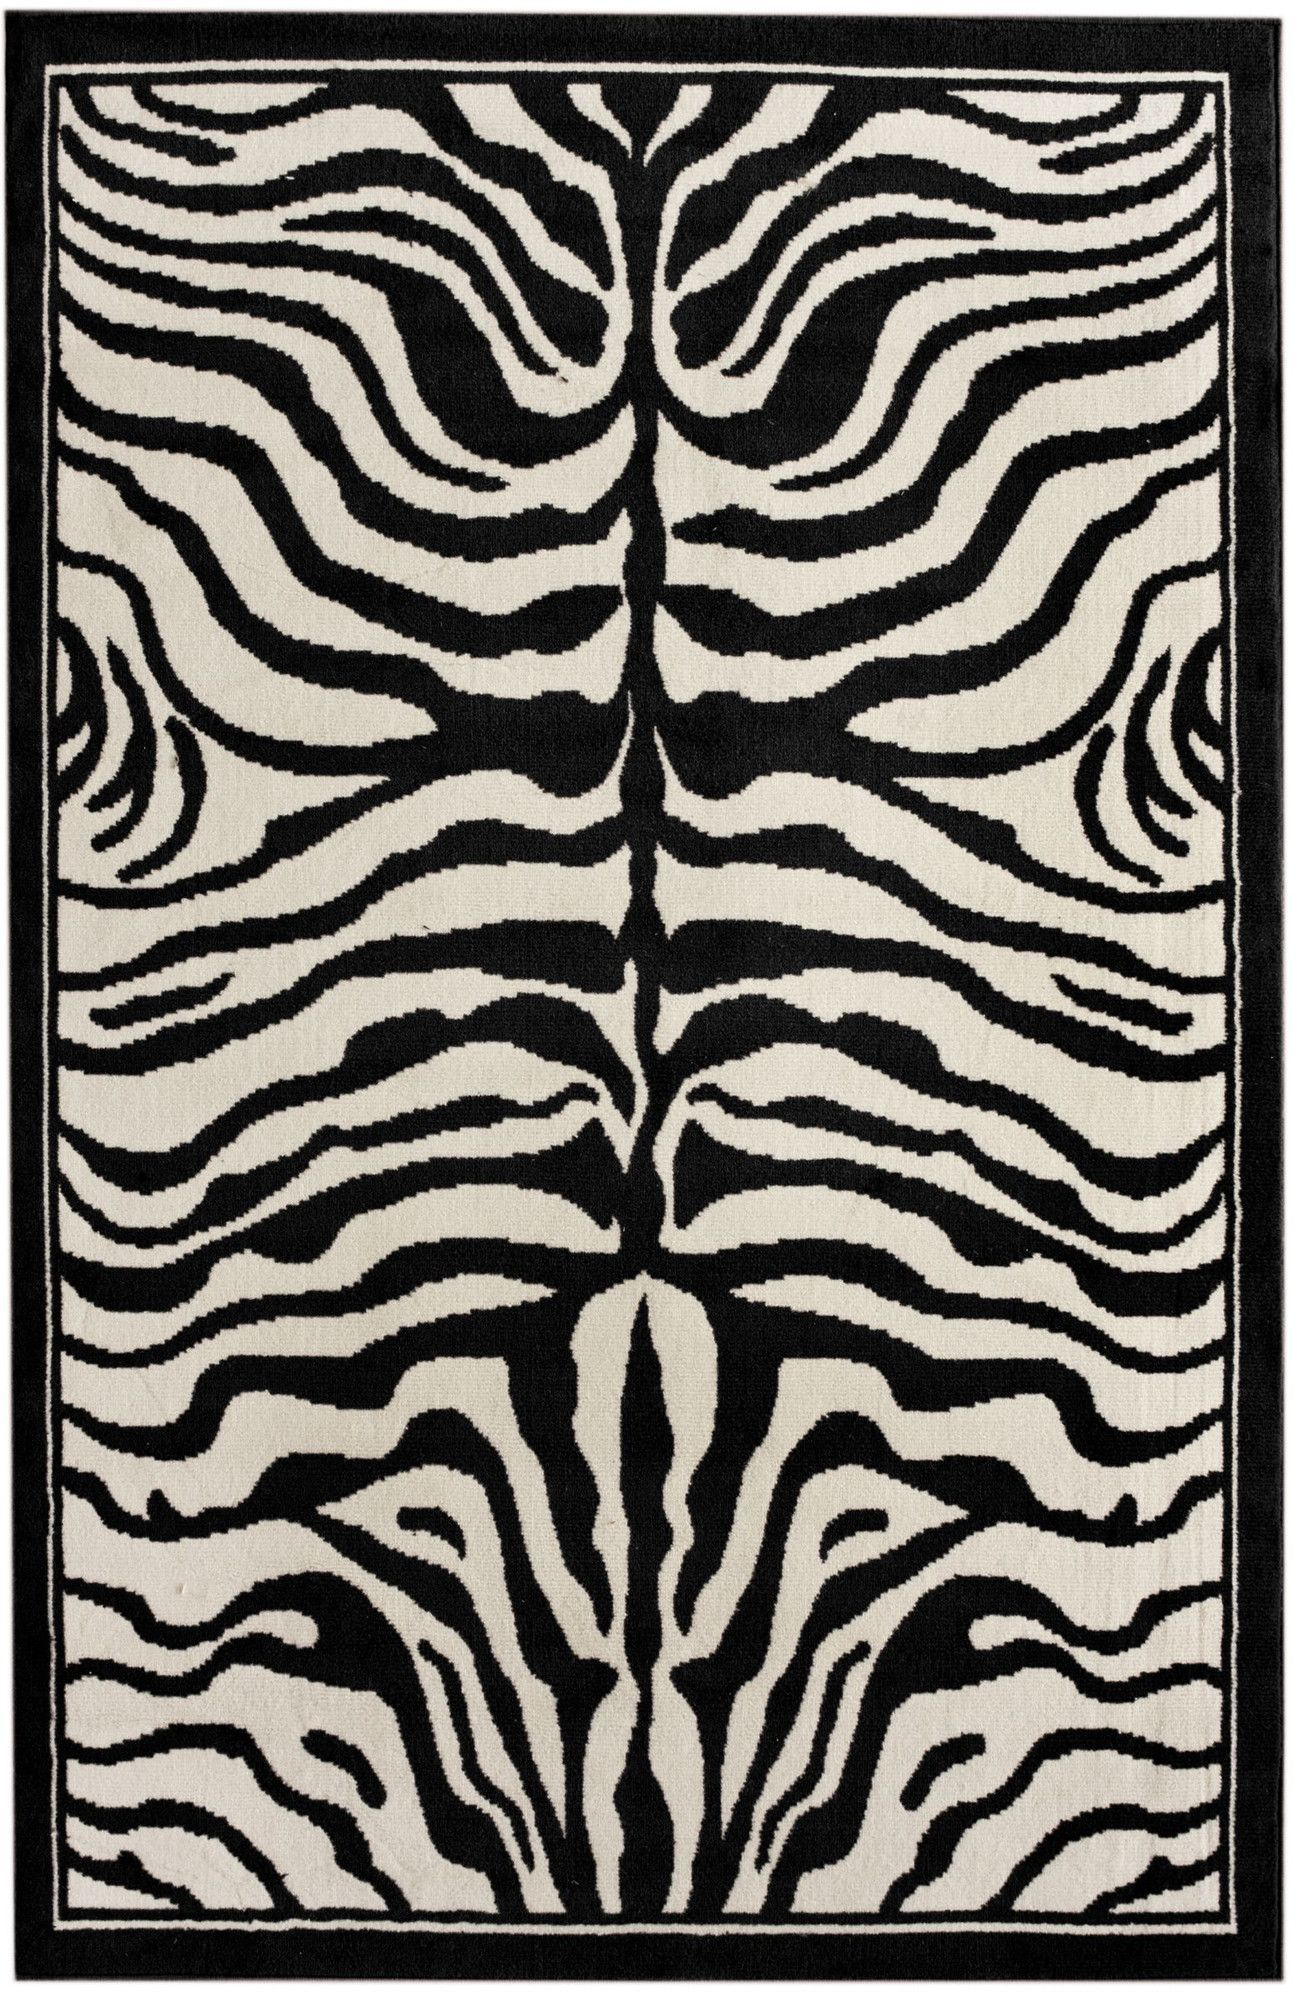 Alfombras Animal Print Zebra Print Black White Area Rug Products In 2018 Pinterest